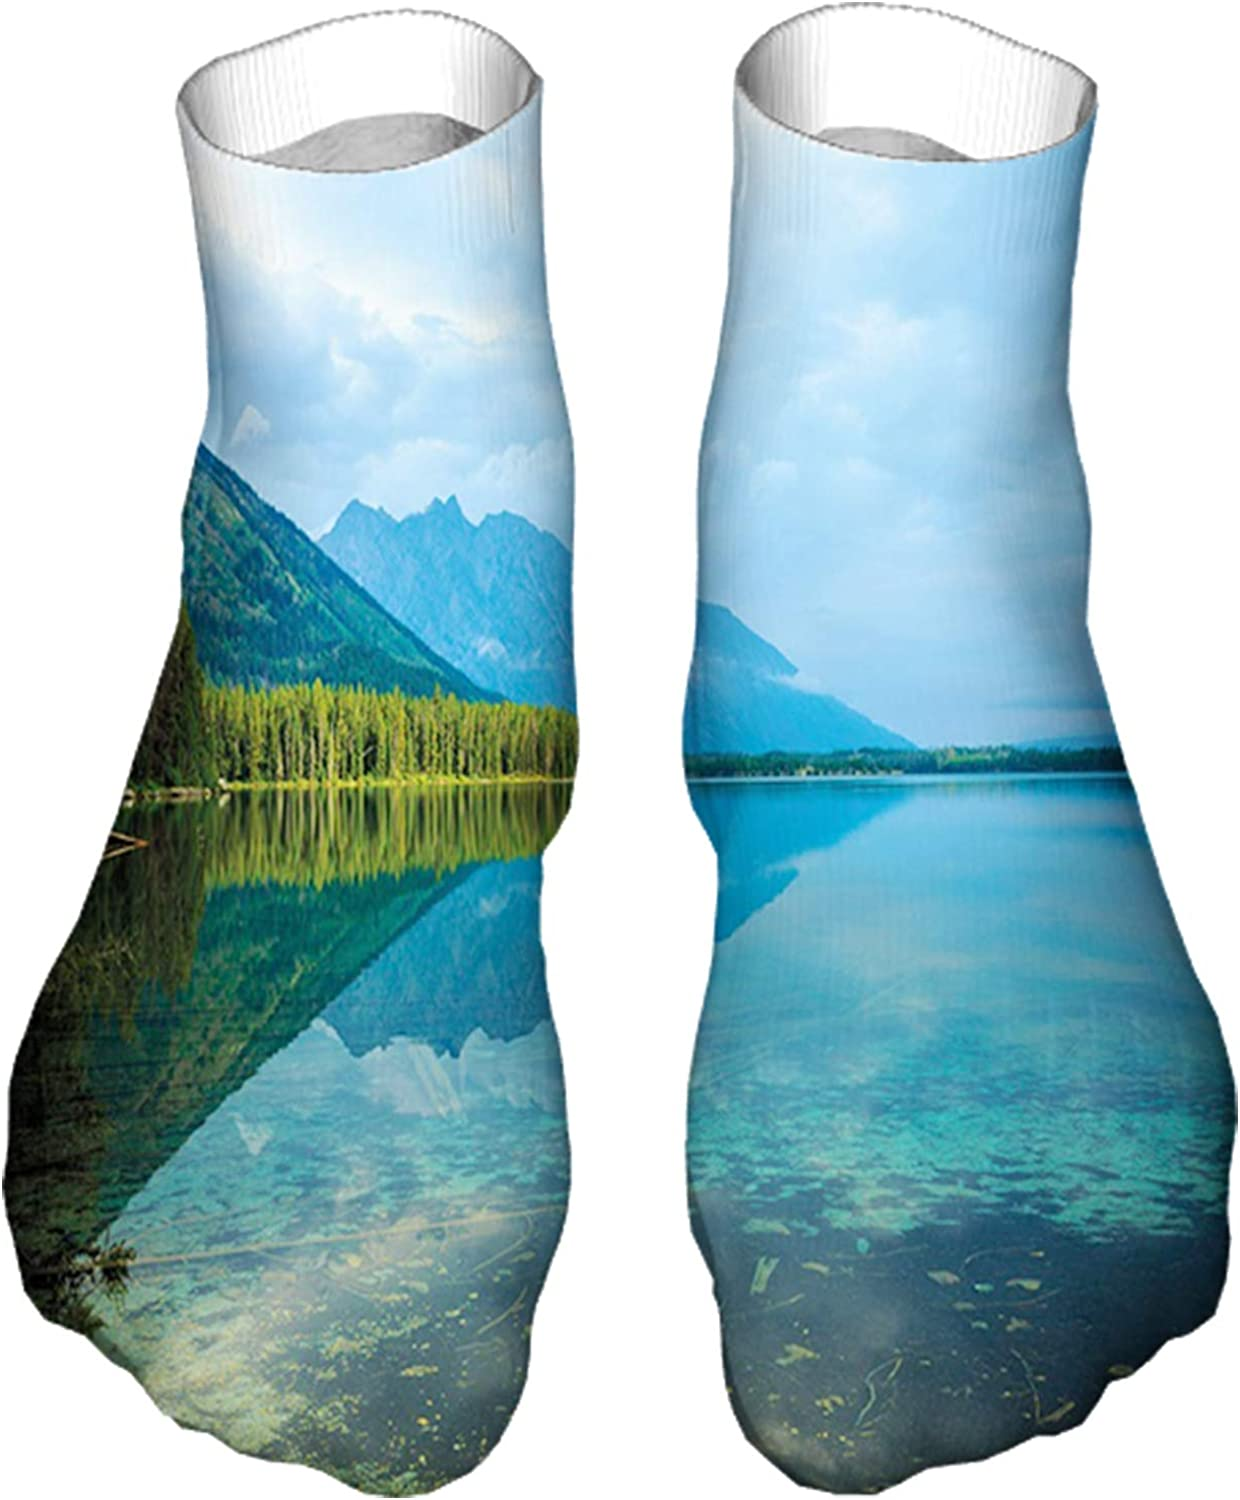 Women's Colorful Patterned Unisex Low Cut/No Show Socks,Leigh Lake Landscape with Amazing Sky and Reflections